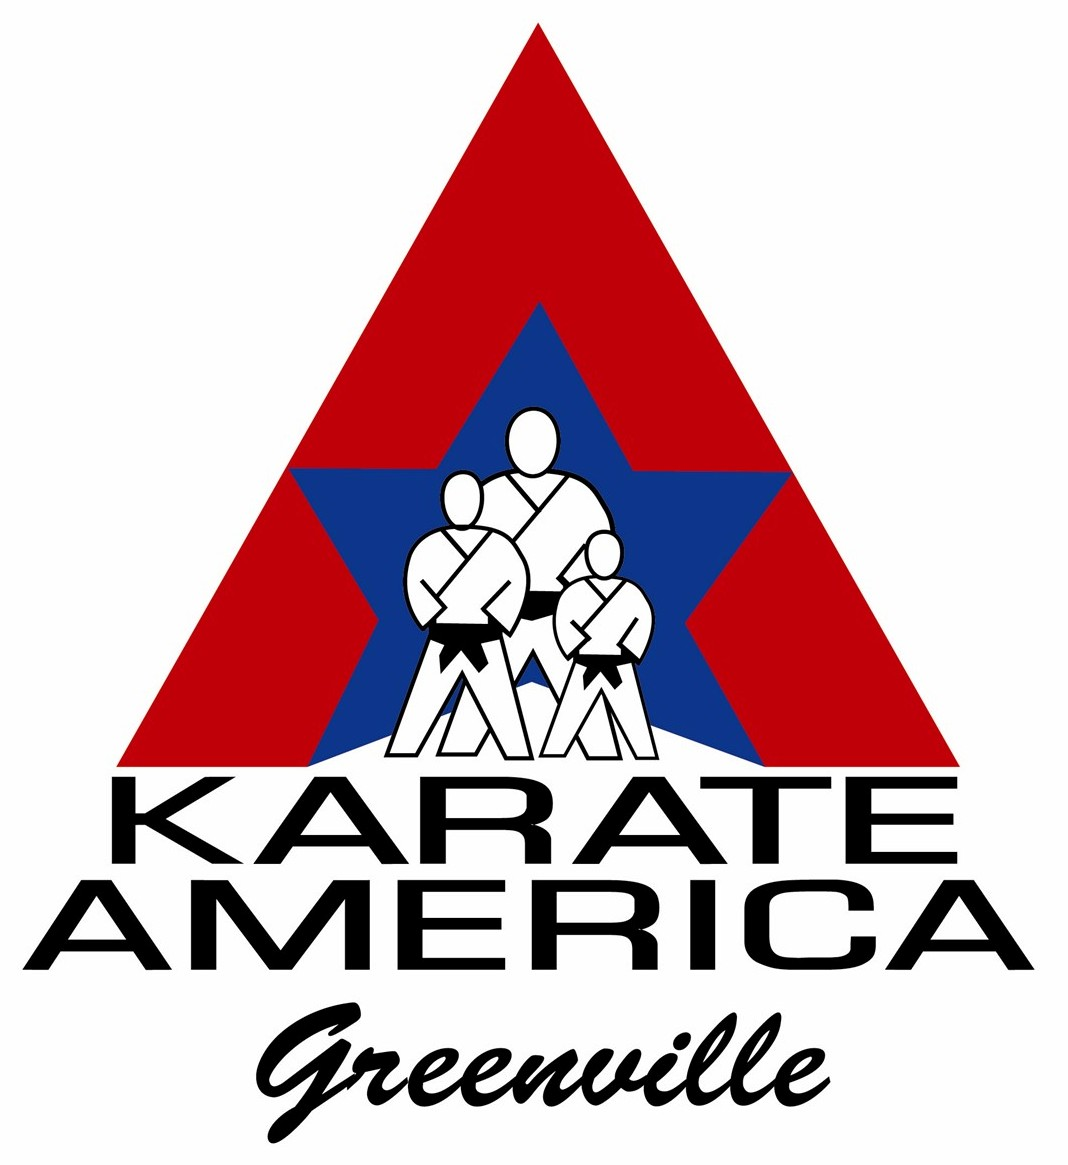 Karate America Greenville Website